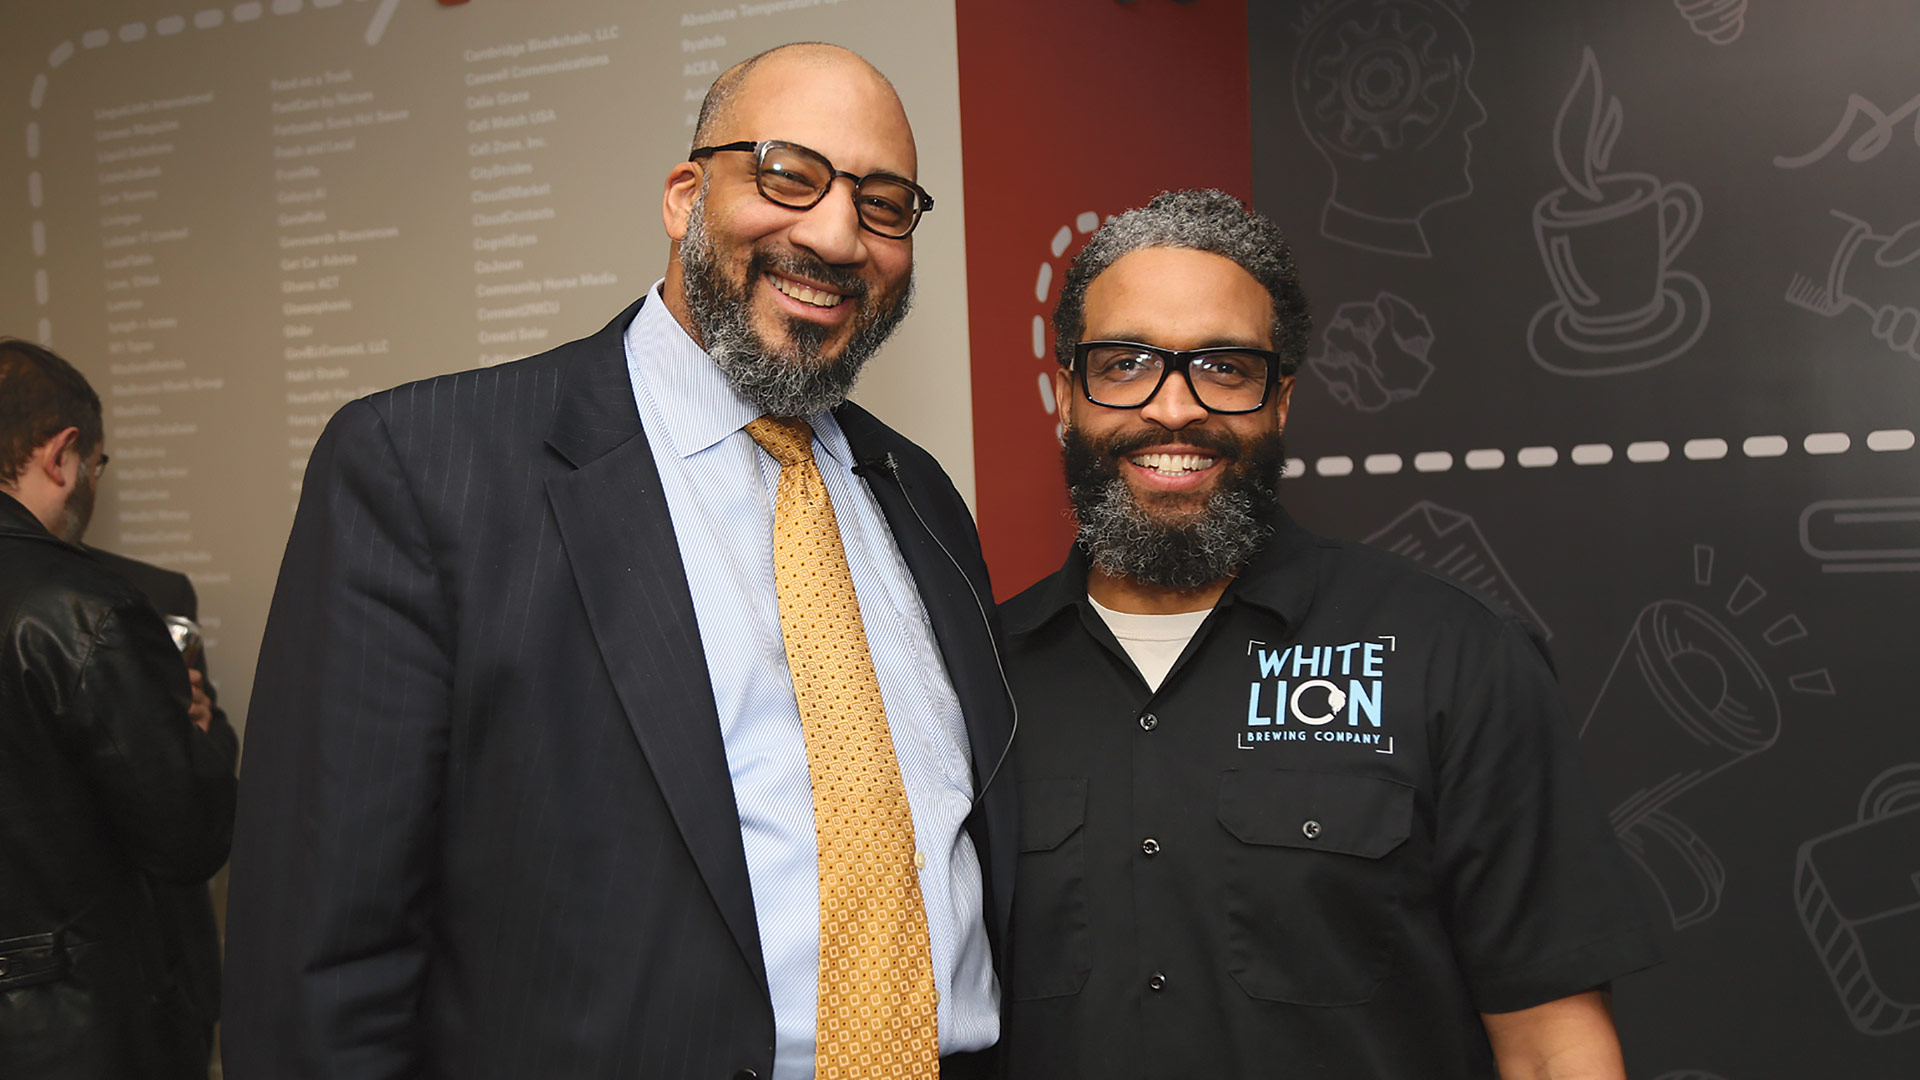 Gregory Thomas, executive director of the Berthiaume Center for Entrepreneurship at UMass Amherst, networks with Ray Berry, founder of White Lion Brewery